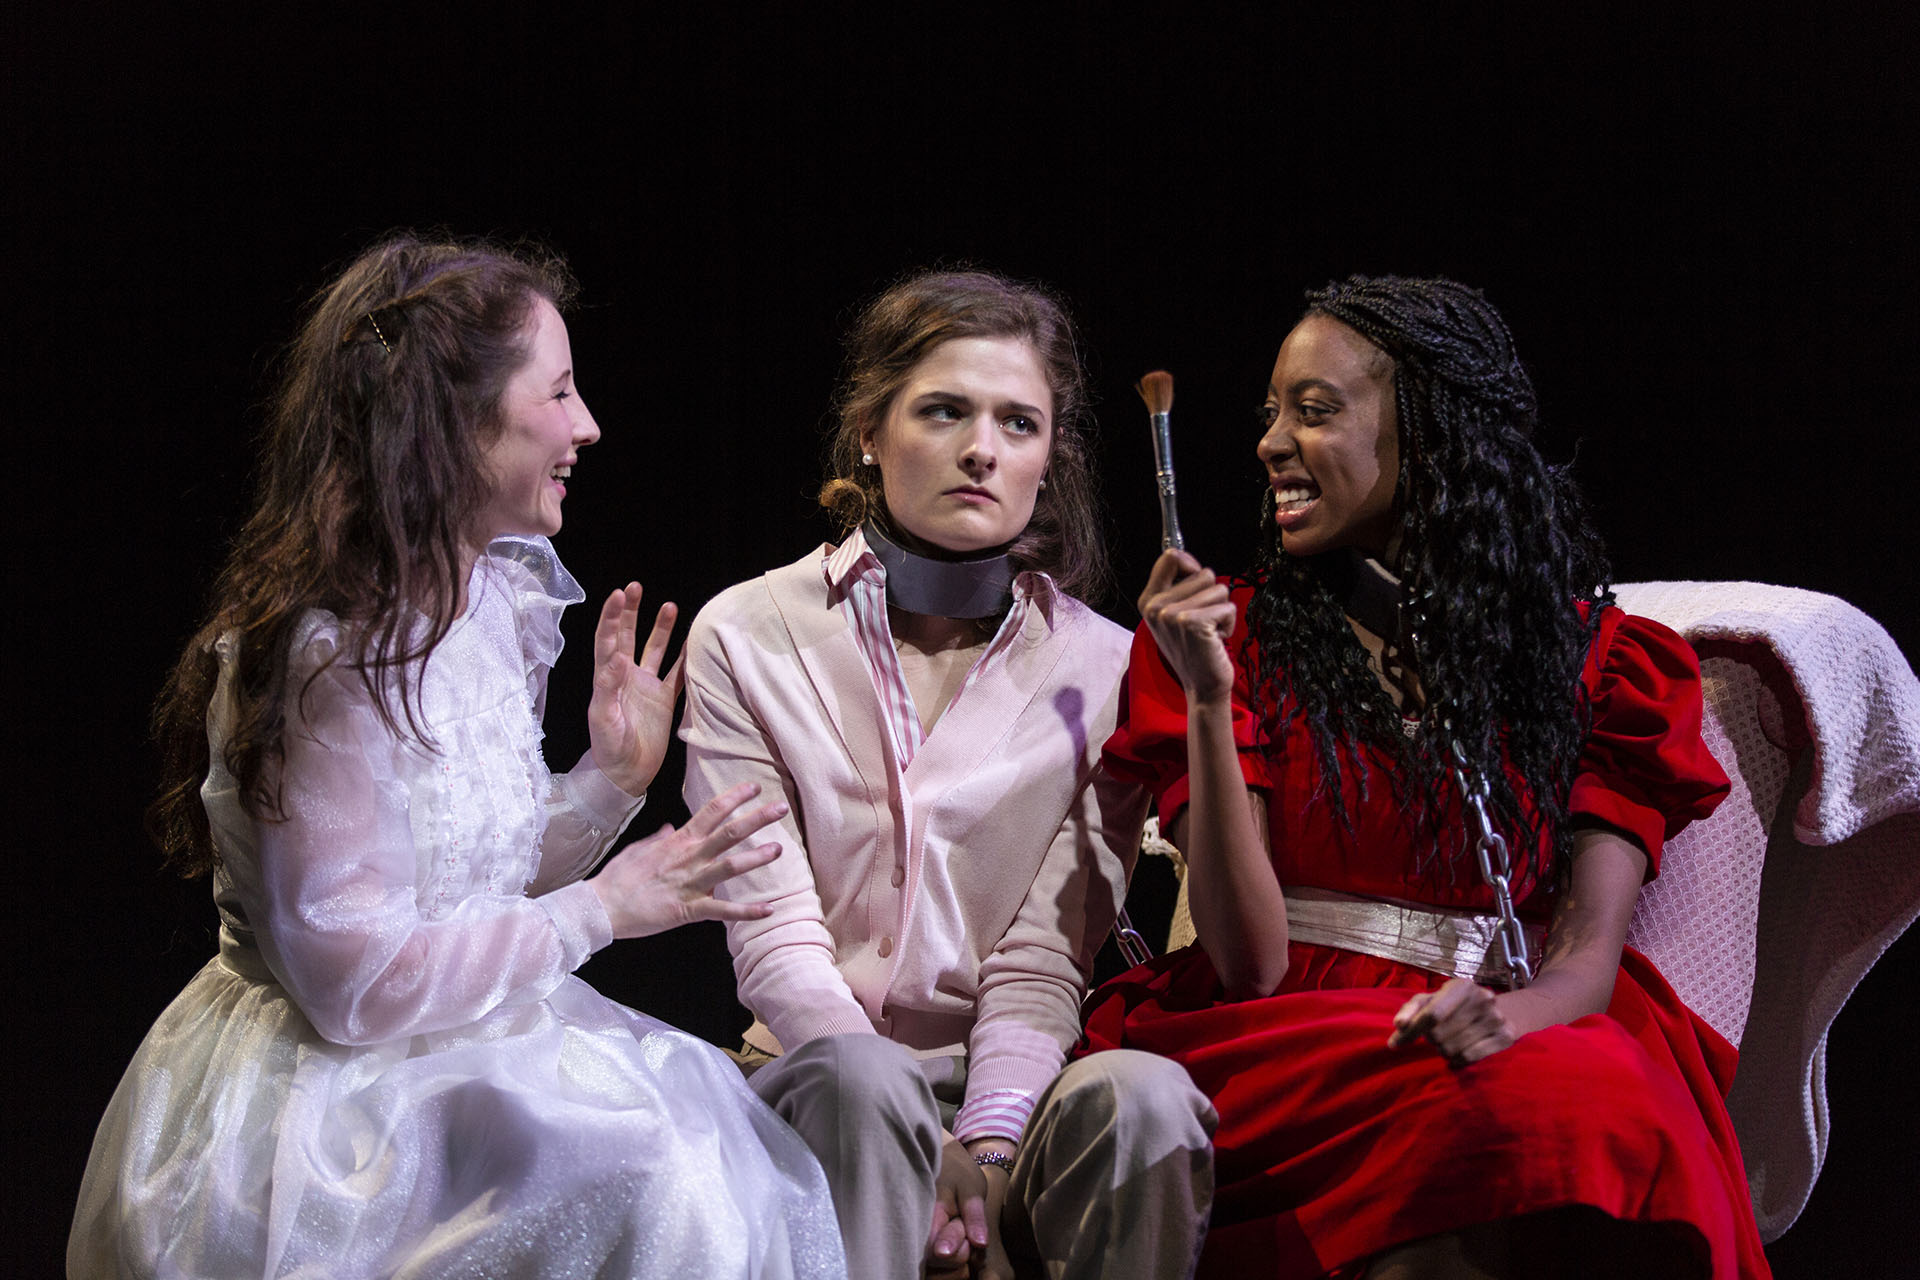 Doireann MacMahon ('20), Louisa Jacobson ('19), and Amandla Jahava ('19) in THE GIRL IS CHAINED by Genne Murphy ('18), directed by Shadi Ghaheri ('18), Carlotta Festival of New Plays, Yale School of Drama, 2018. Photo by T. Charles Erickson.